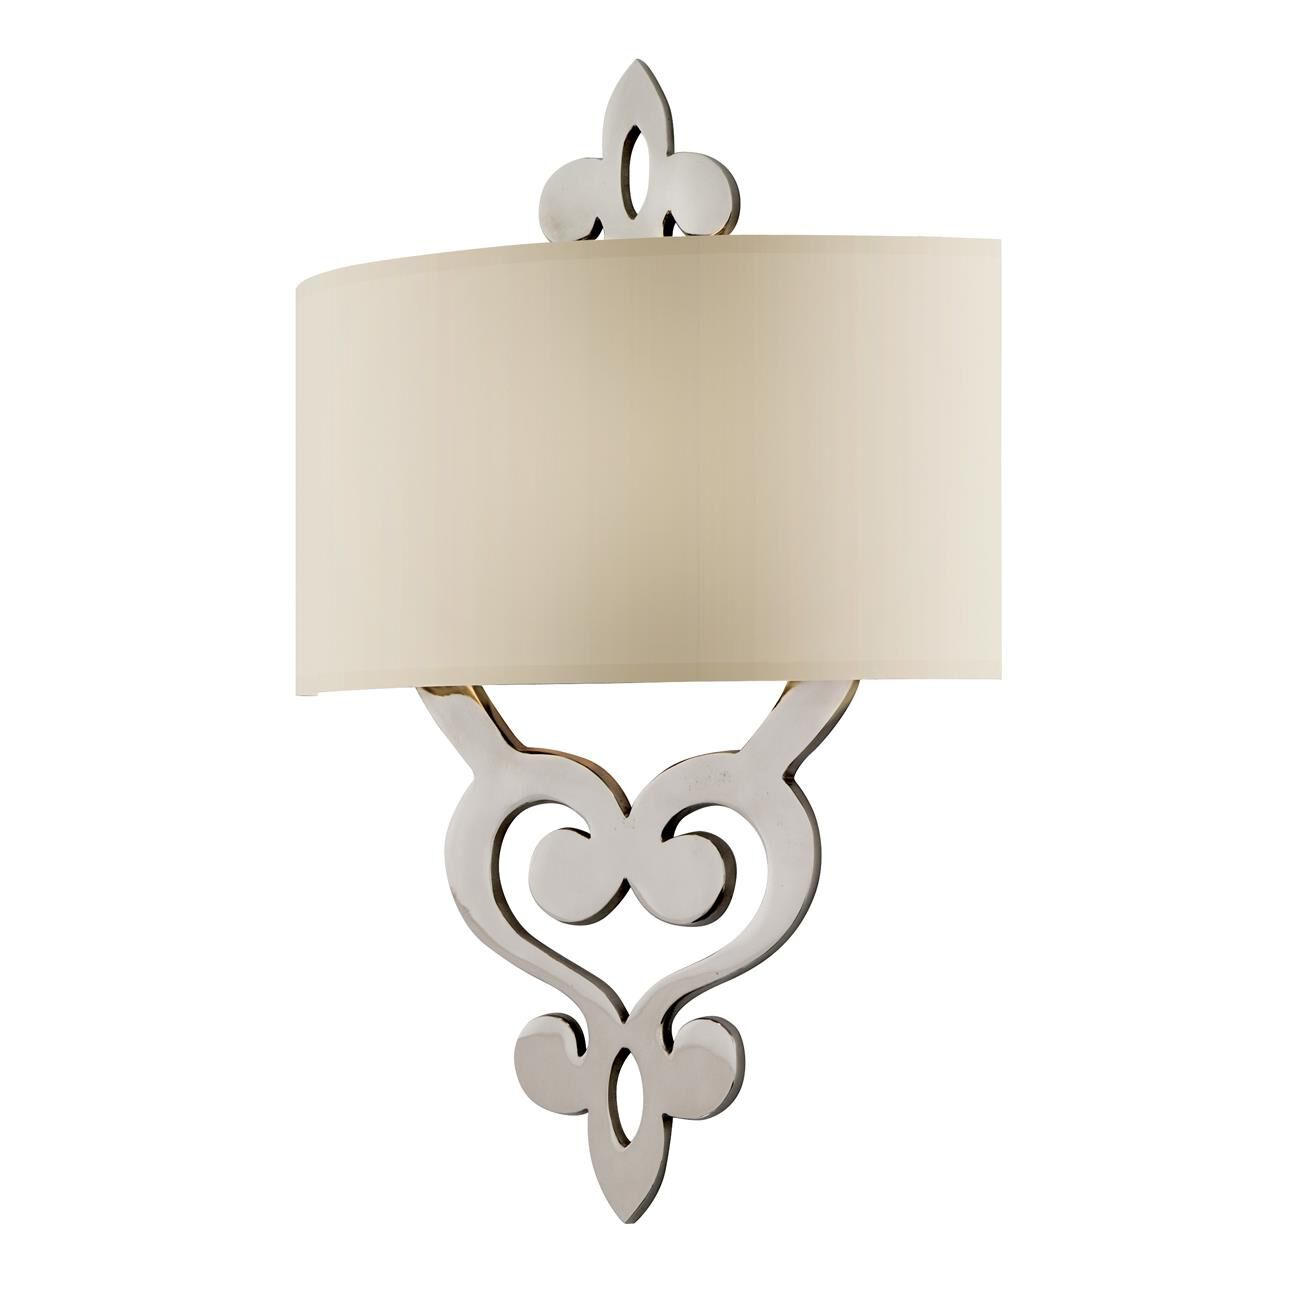 Corbett Lighting Olivia 13 Inch Wall Sconce Olivia - 102-12 - Transitional Wall Sconce